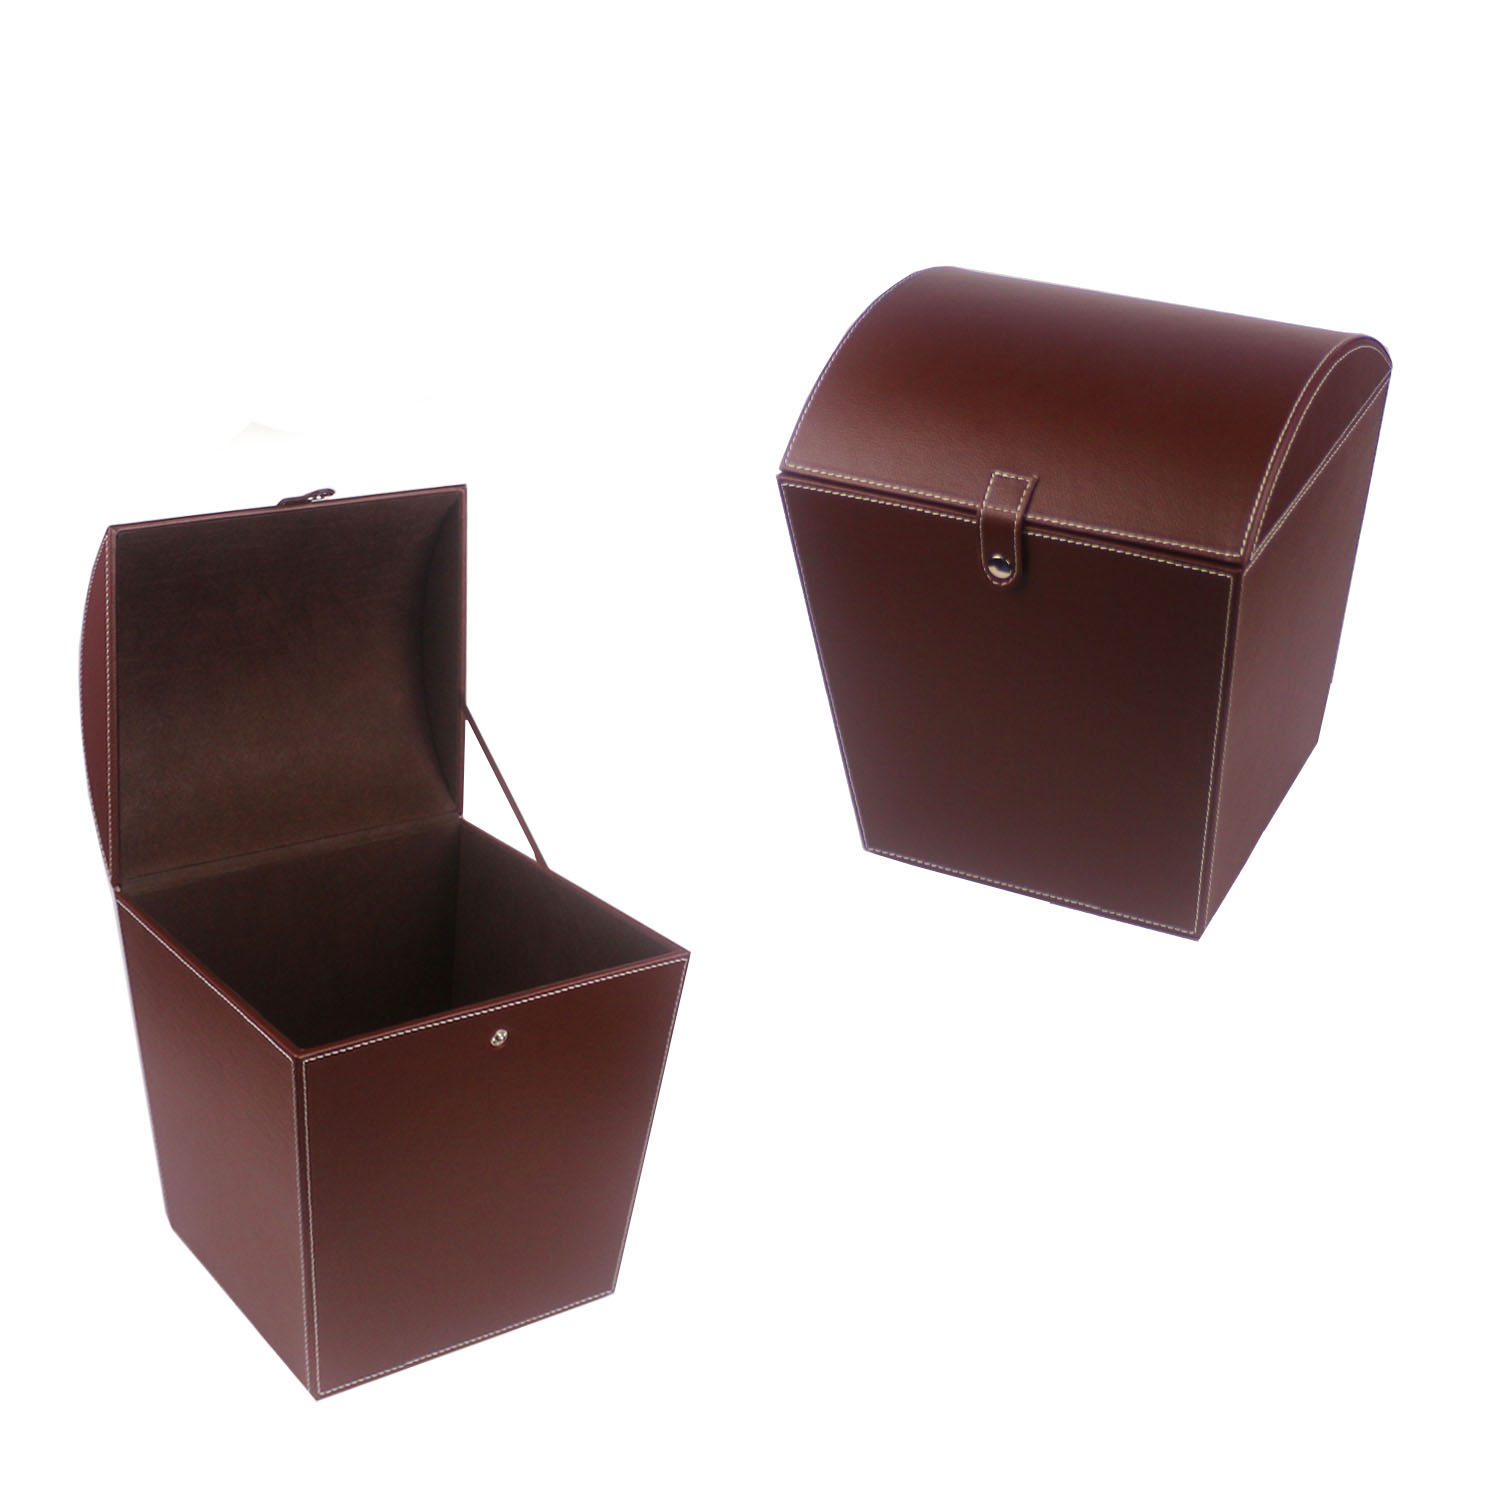 Handmade round faux leather waste bin for household with lip